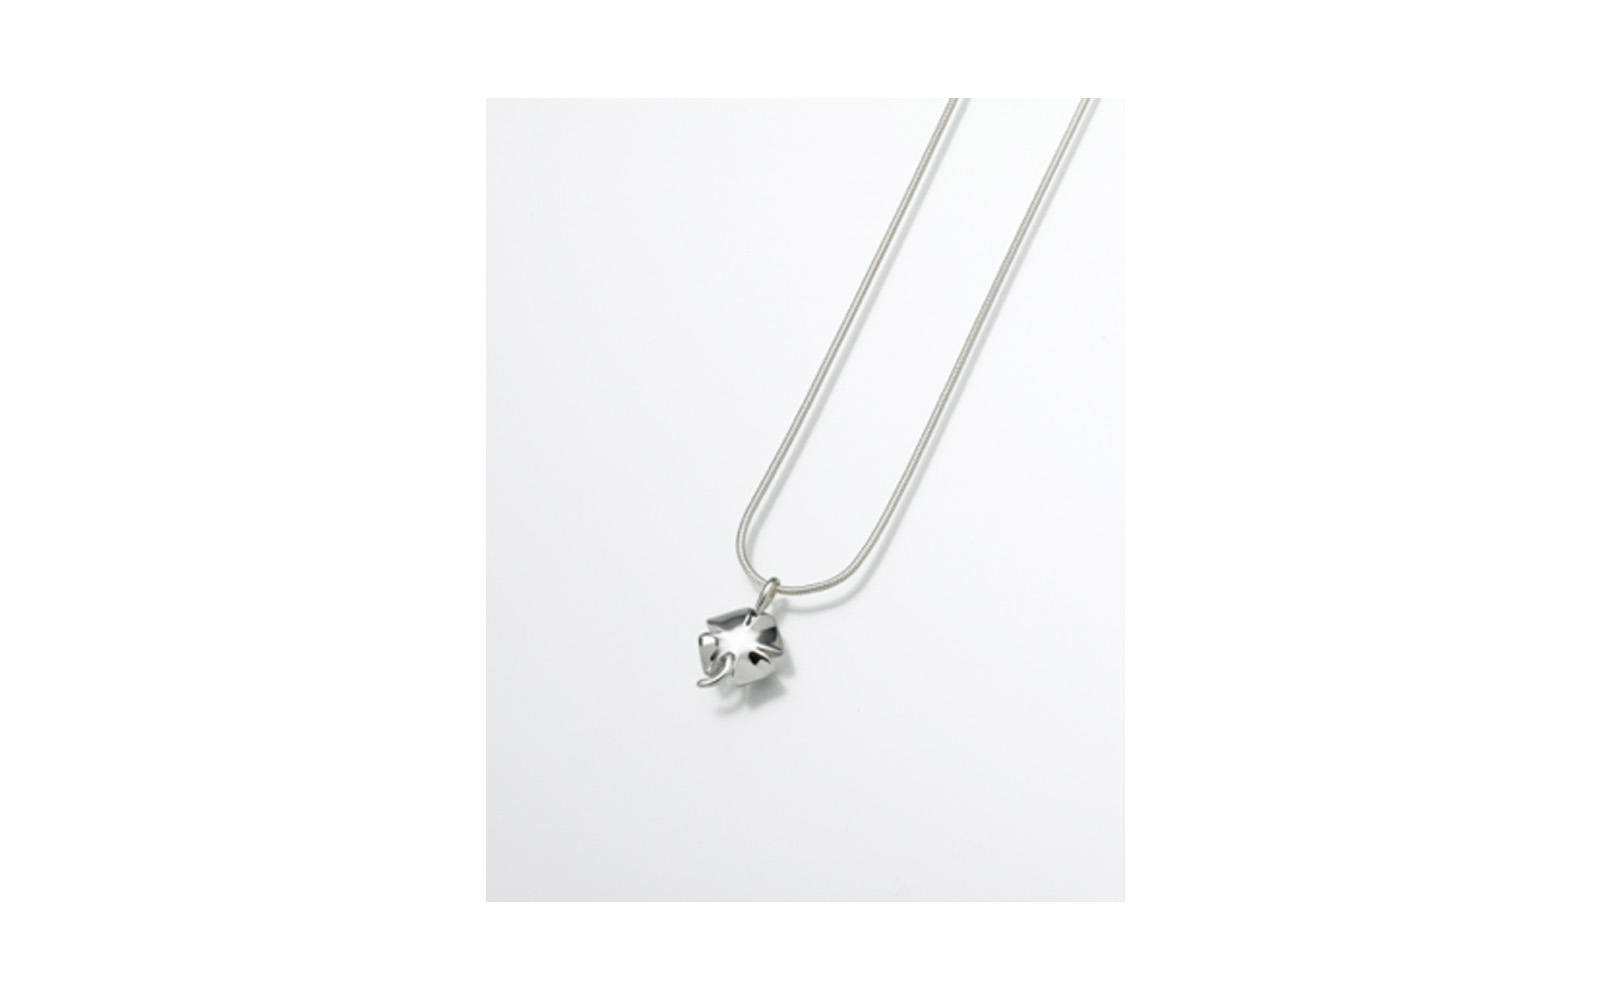 "Sterling Silver 4 Leaf Clover Pendant    Measures 5/8""W x 3/4""H, Chain not included,  $160"